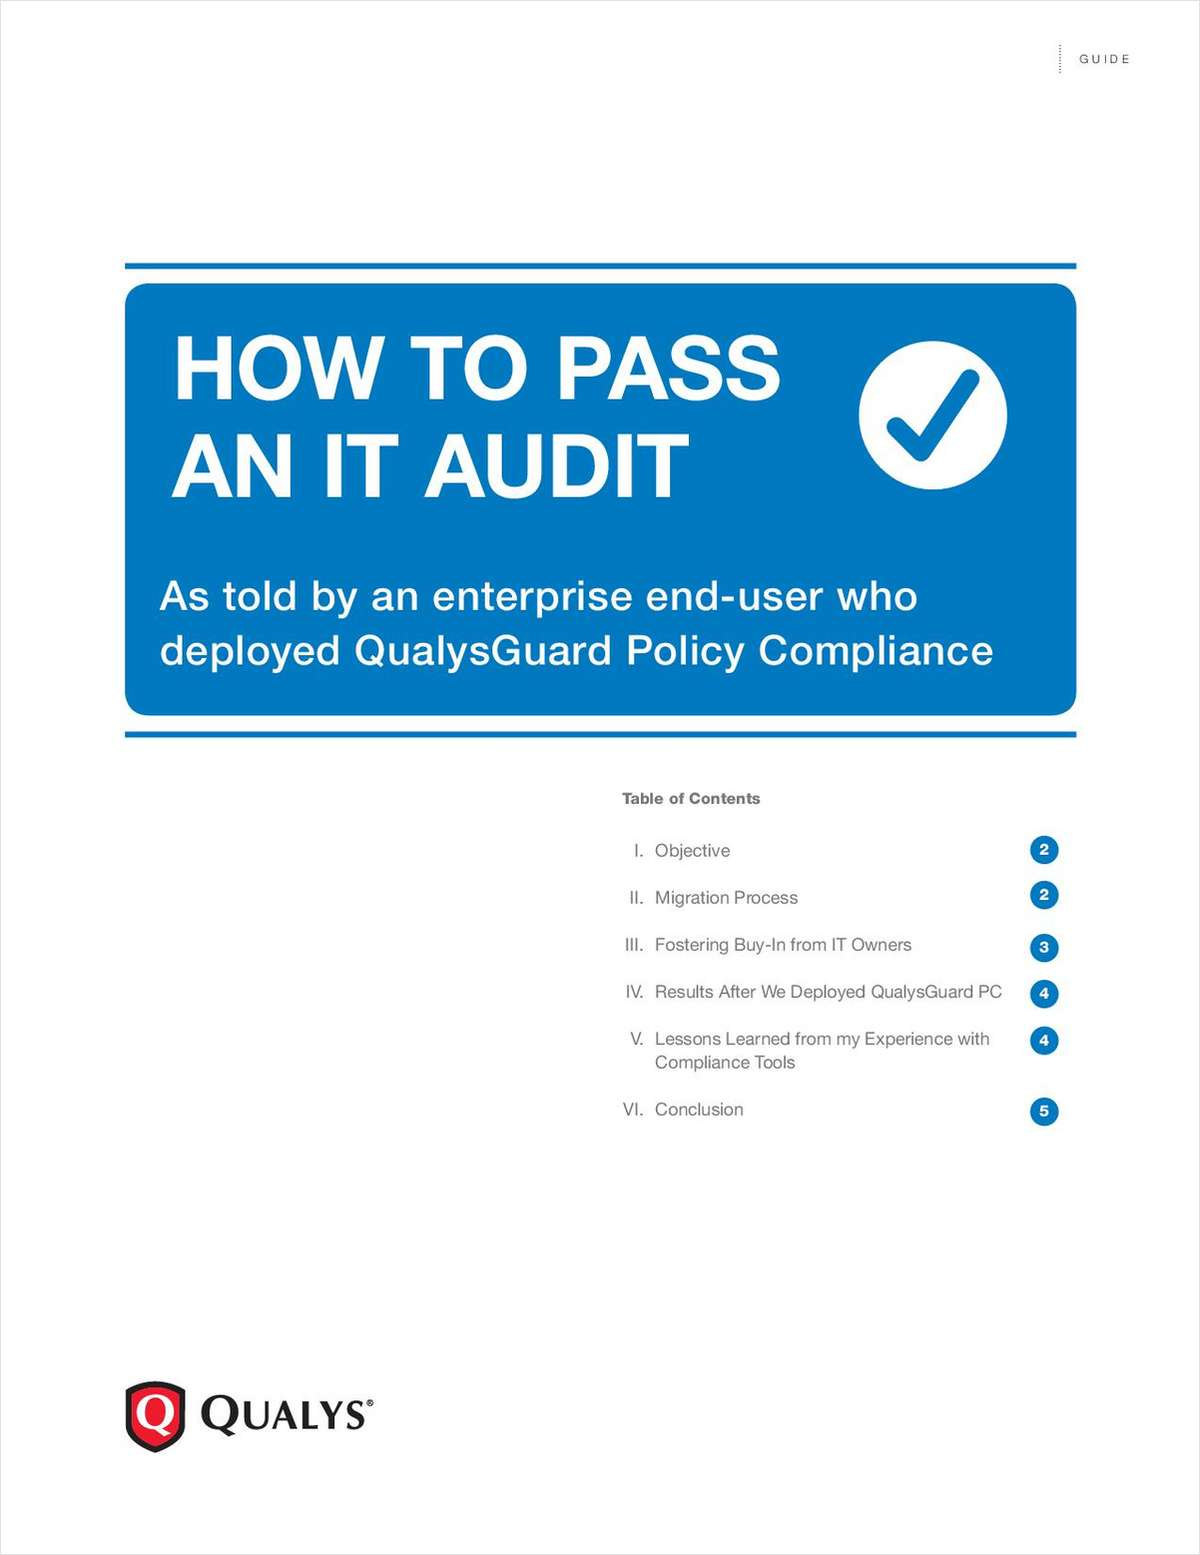 How to Pass an IT Audit